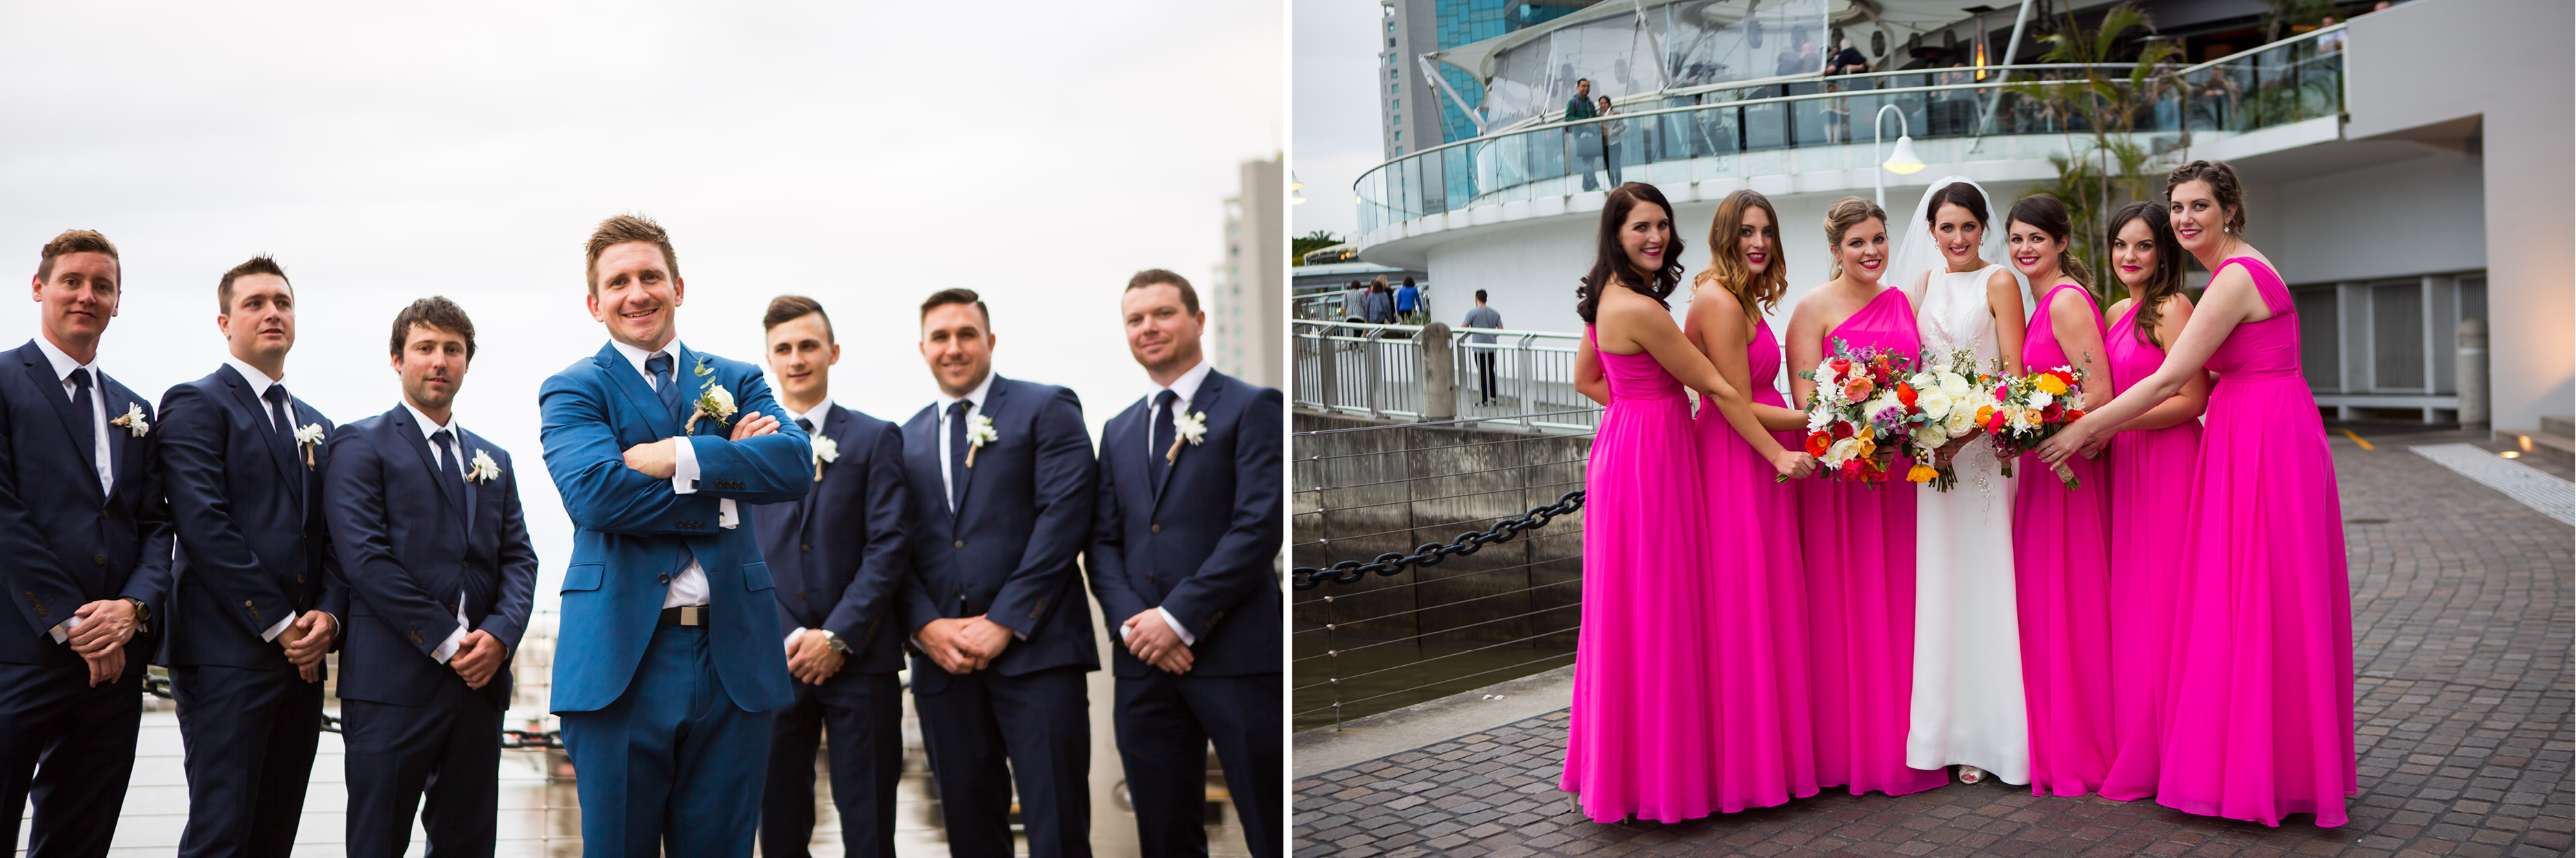 Emma_cleary_photography Destination wedding15